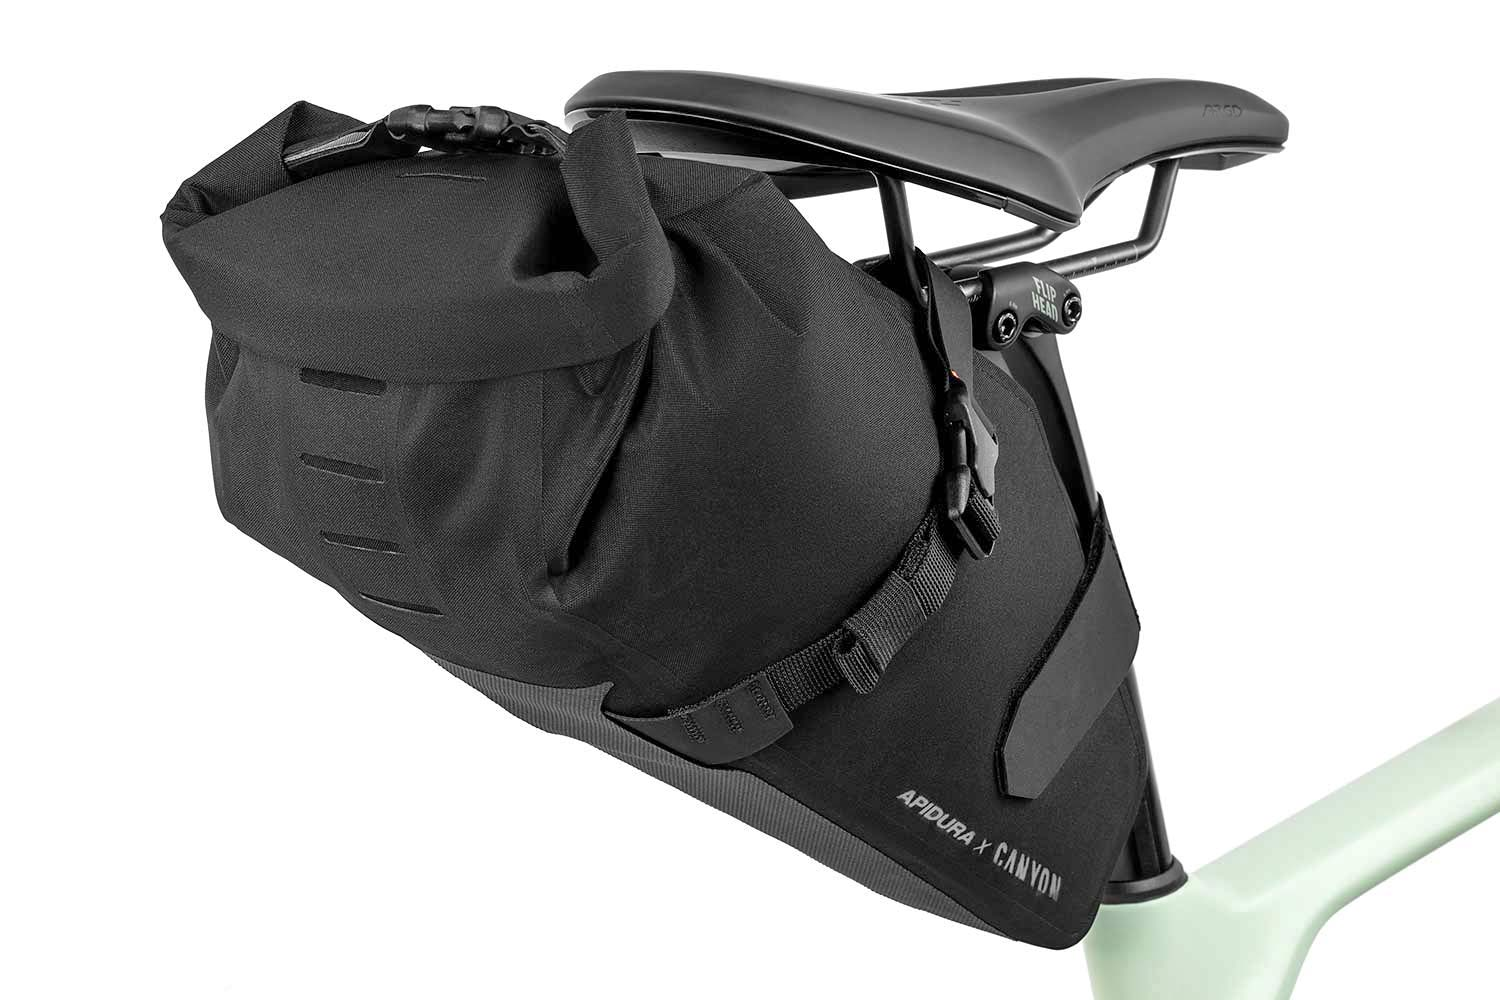 Apidura x Canyon Grizzly off-road adventure bikepacking bags for Grizl gravel bike,saddle pack detail